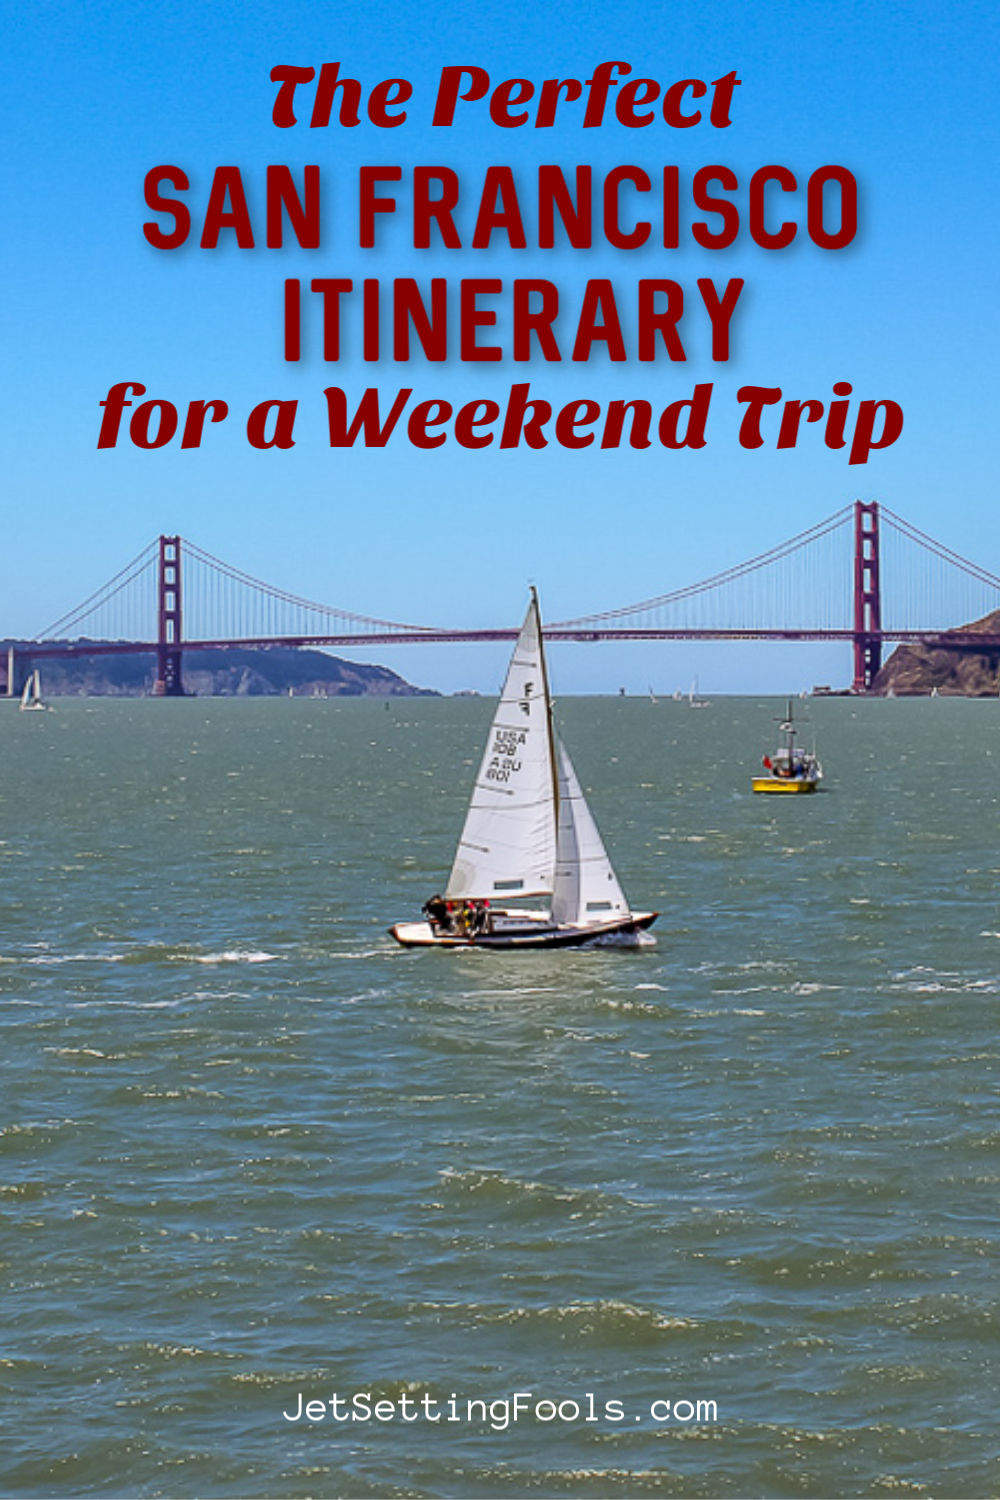 San Francisco Itinerary for a Weekend Trip for First Time Visitors by JetSettingFools.com